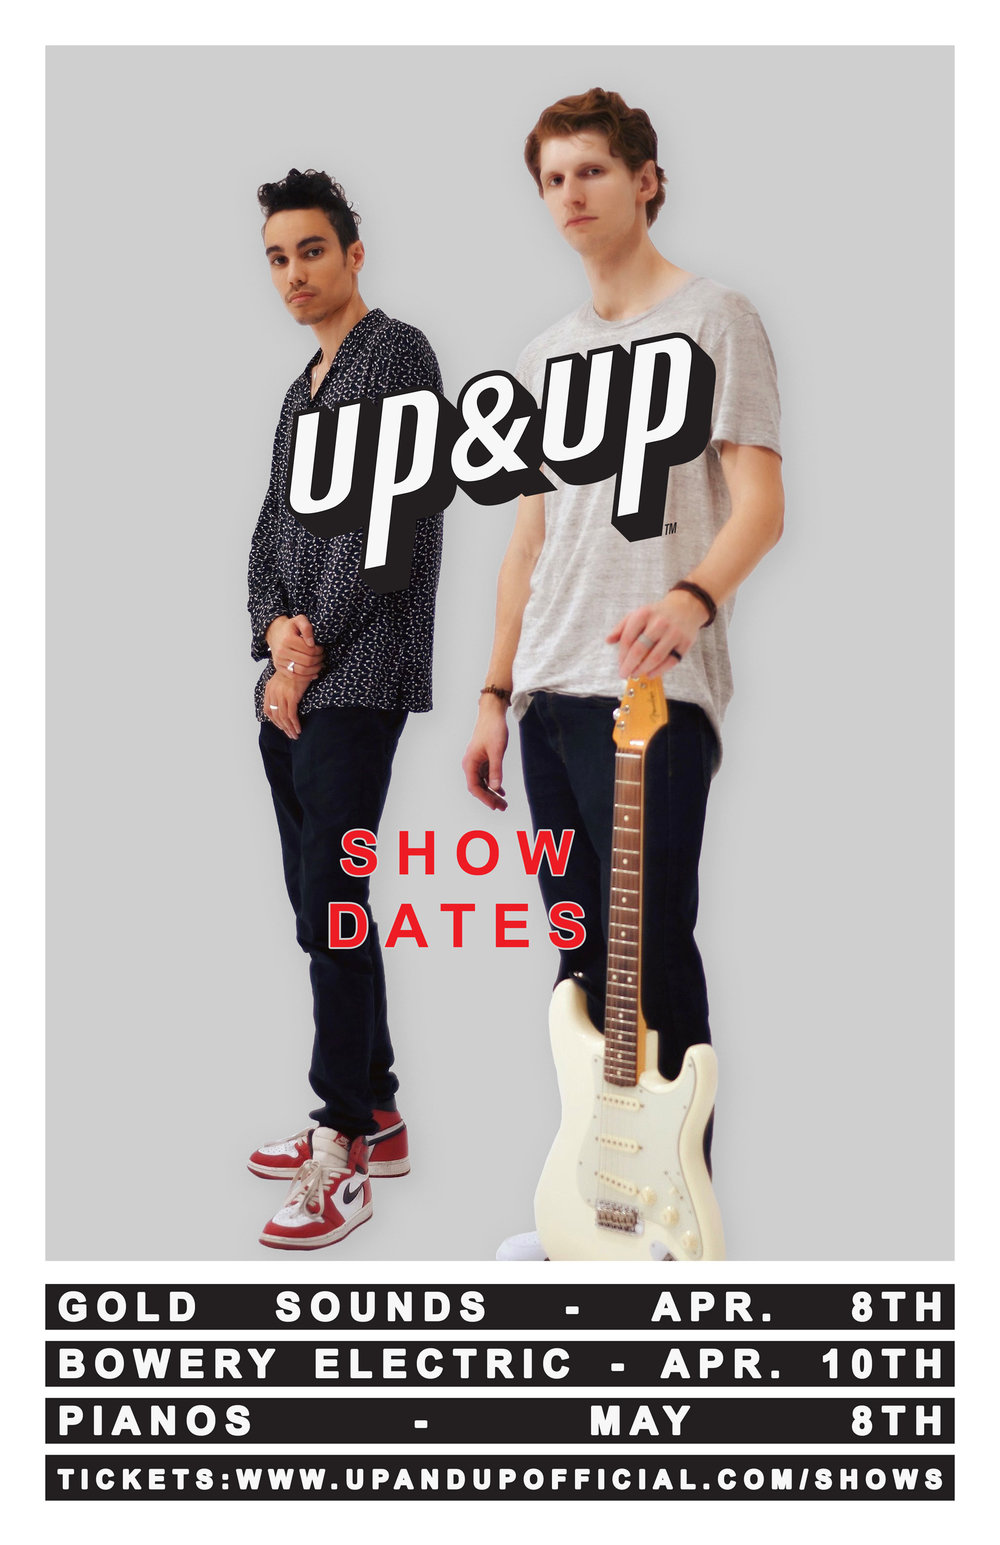 UP&UP SHOW DATES